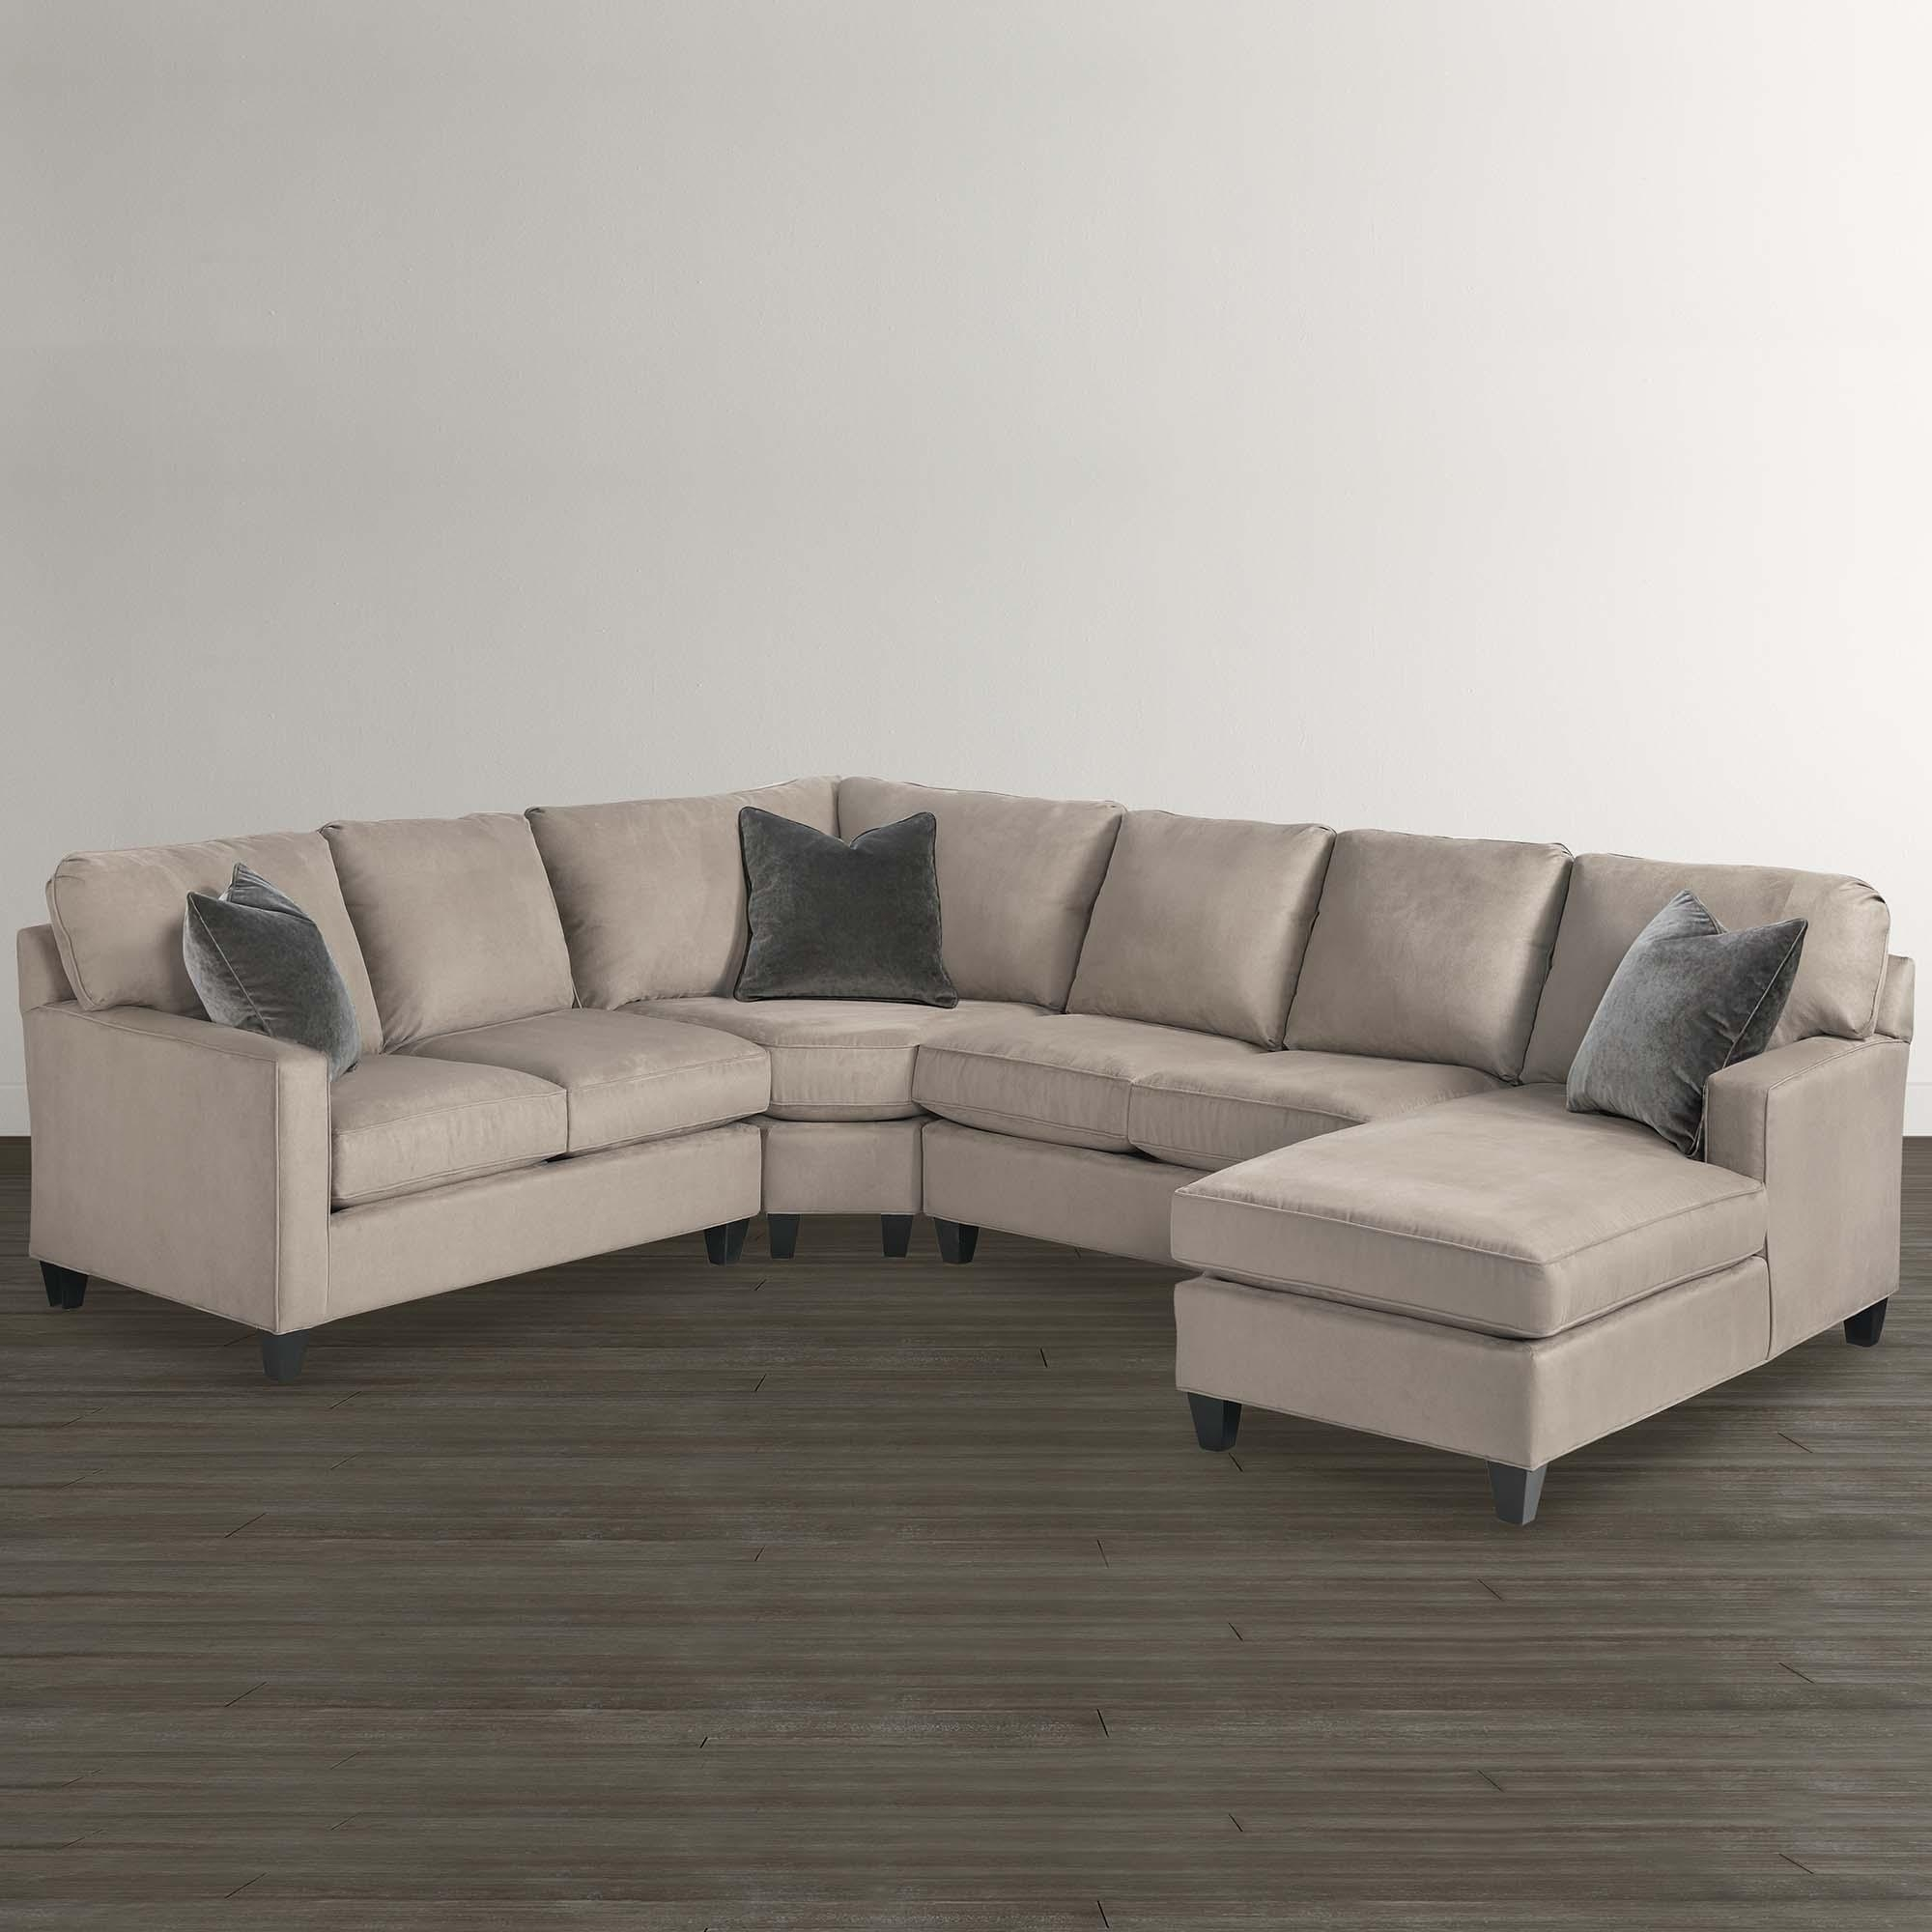 A Sectional Sofa Collection With Something For Everyone Regarding U Shaped Leather Sectional Sofa (Image 1 of 20)